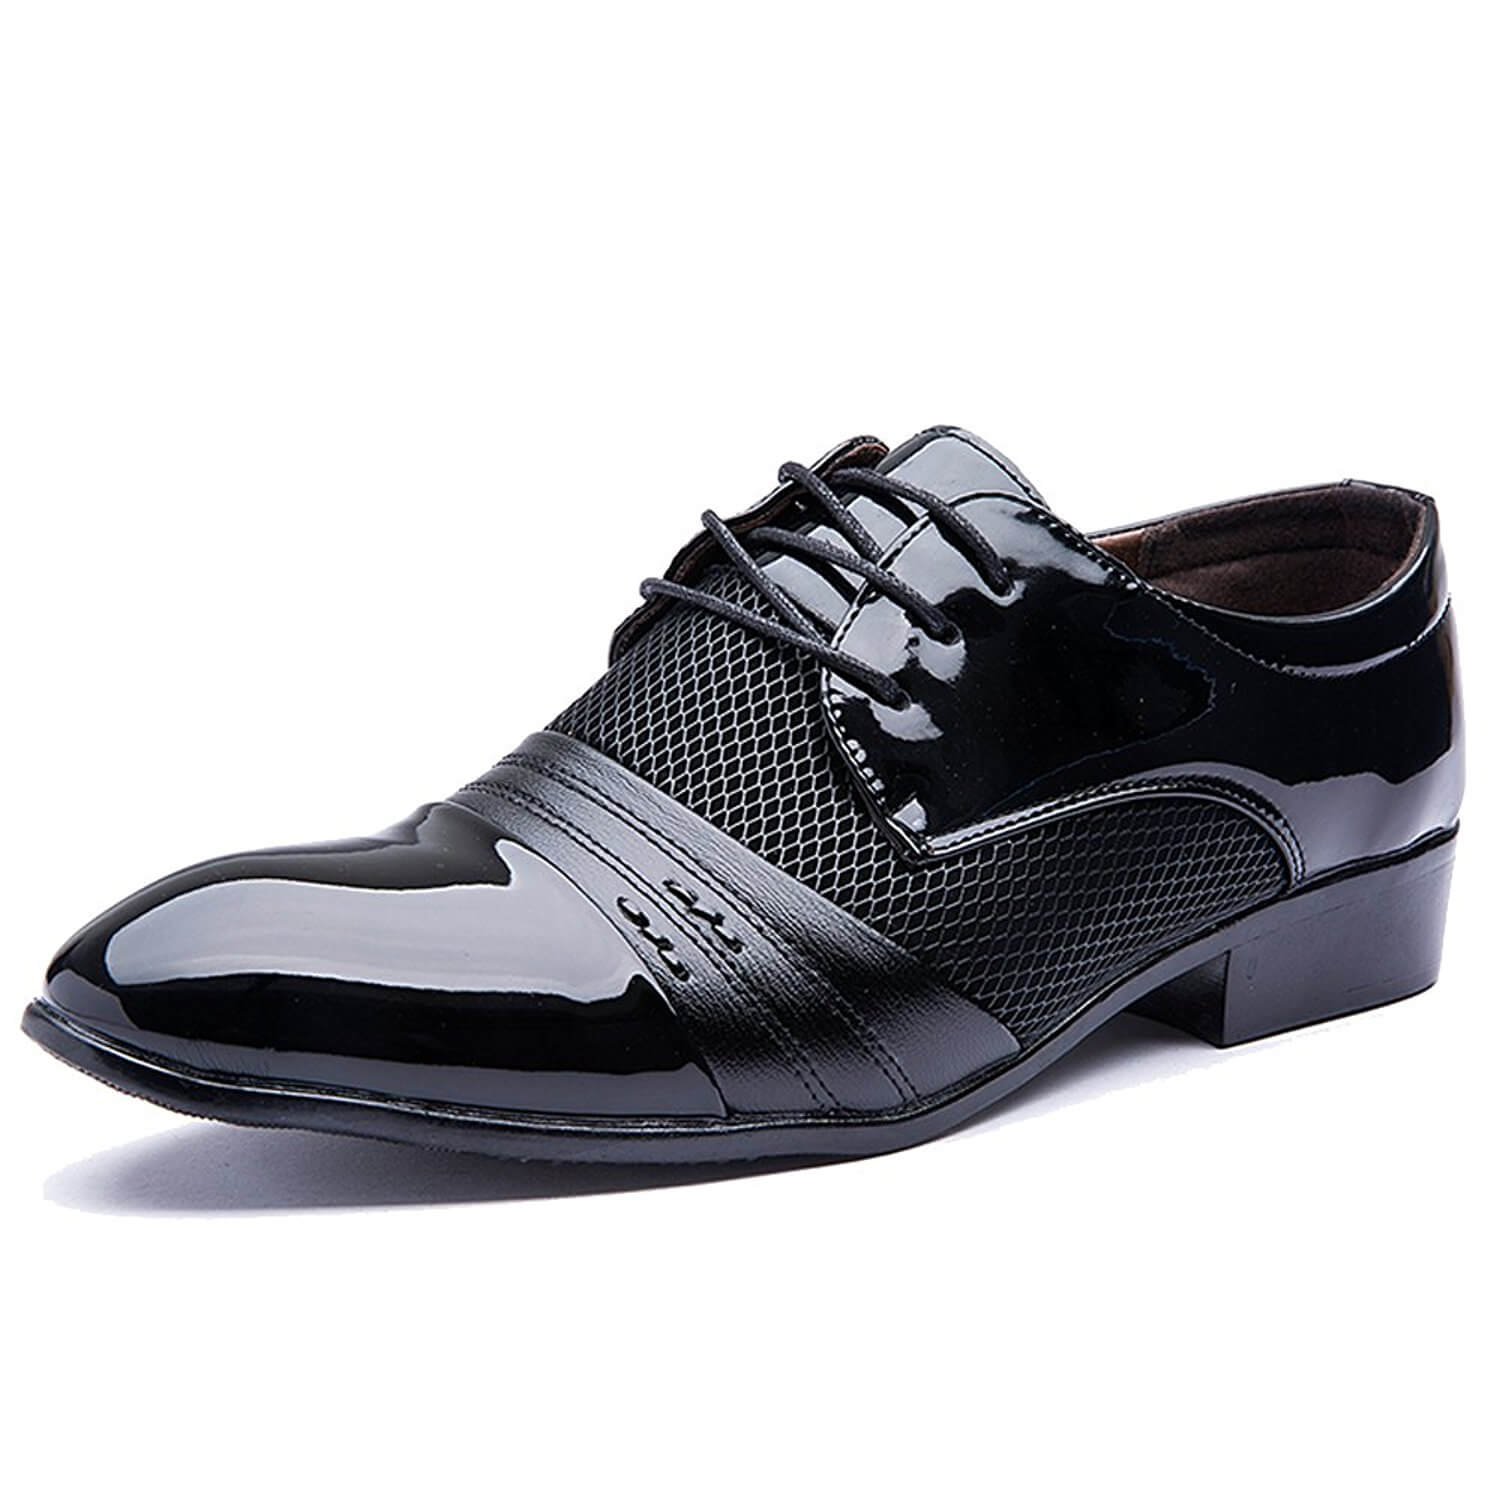 This classy shoe should only be bought through a retailer